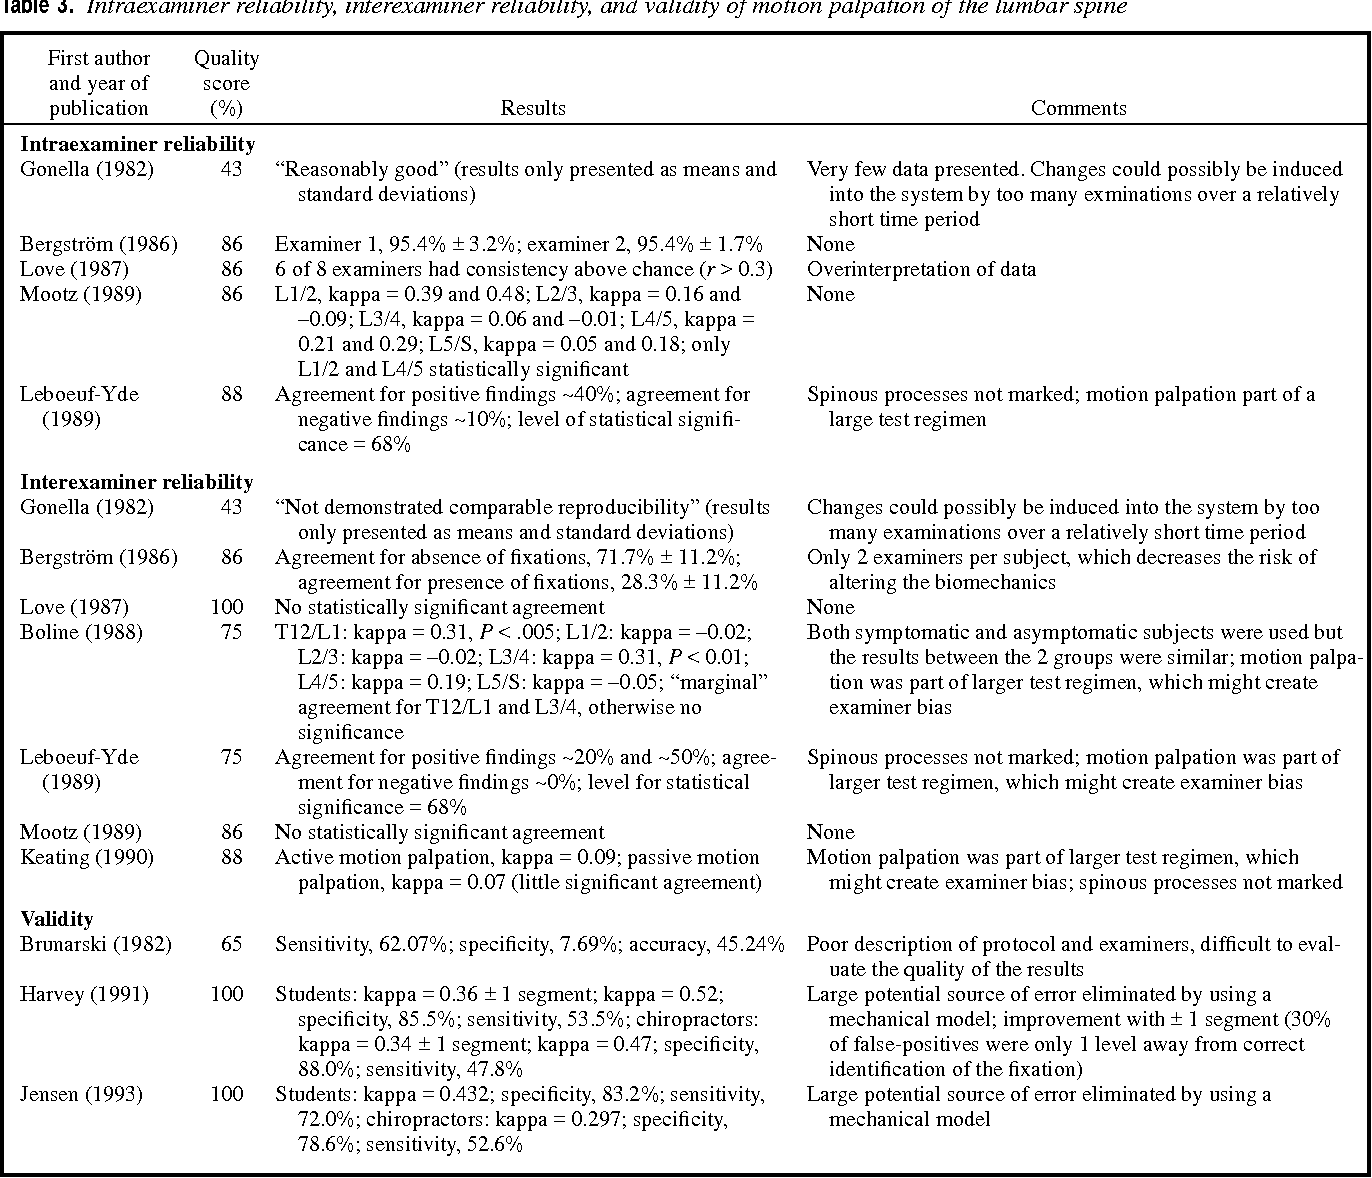 Table 3. Intraexaminer reliability, interexaminer reliability, and validity of motion palpation of the lumbar spine